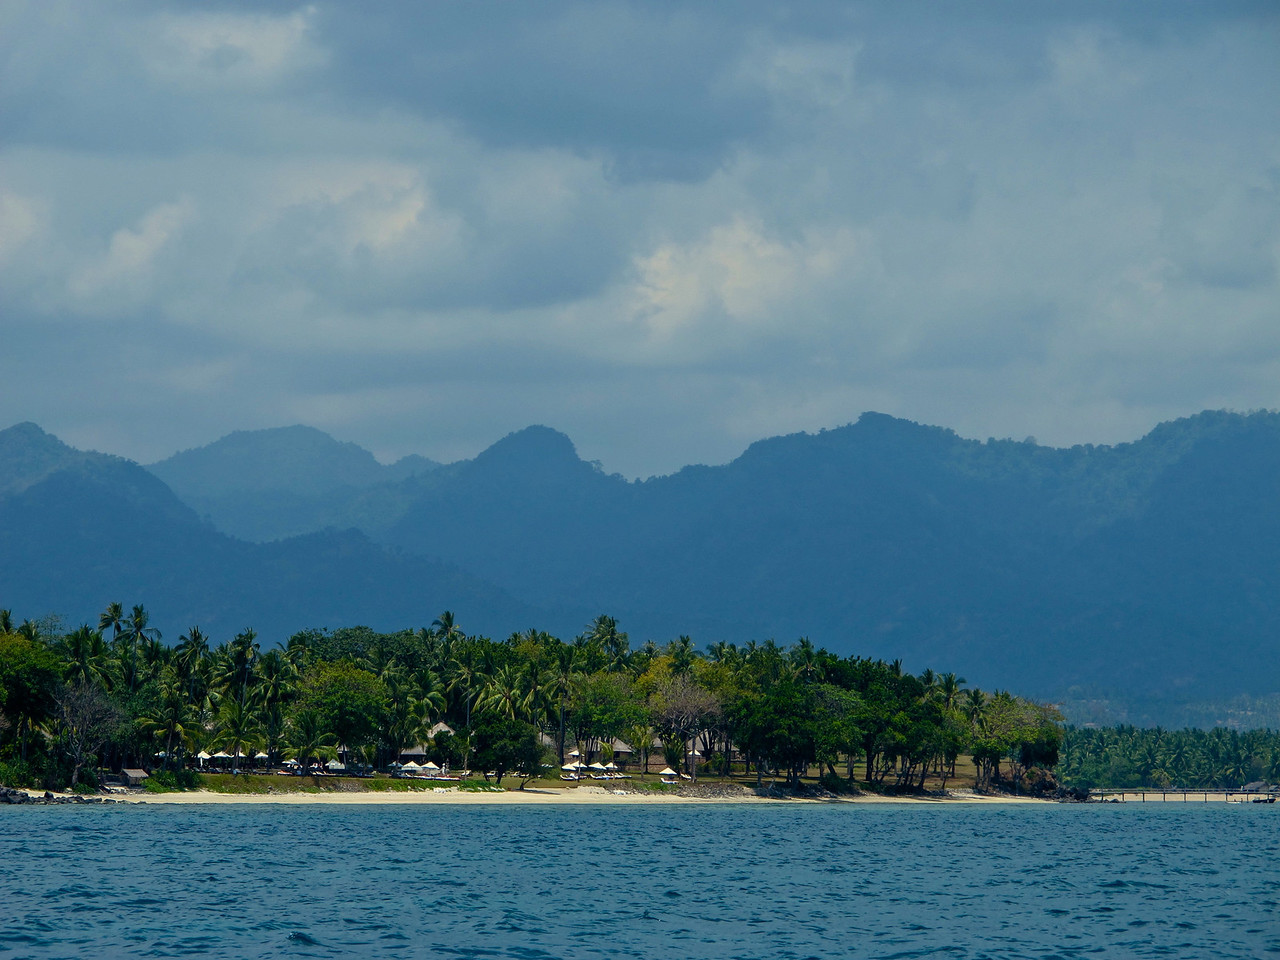 We pass past Gili Air, the first of the three islands on our way to Terwangen.  You can see the mountains of Lombok in the background.